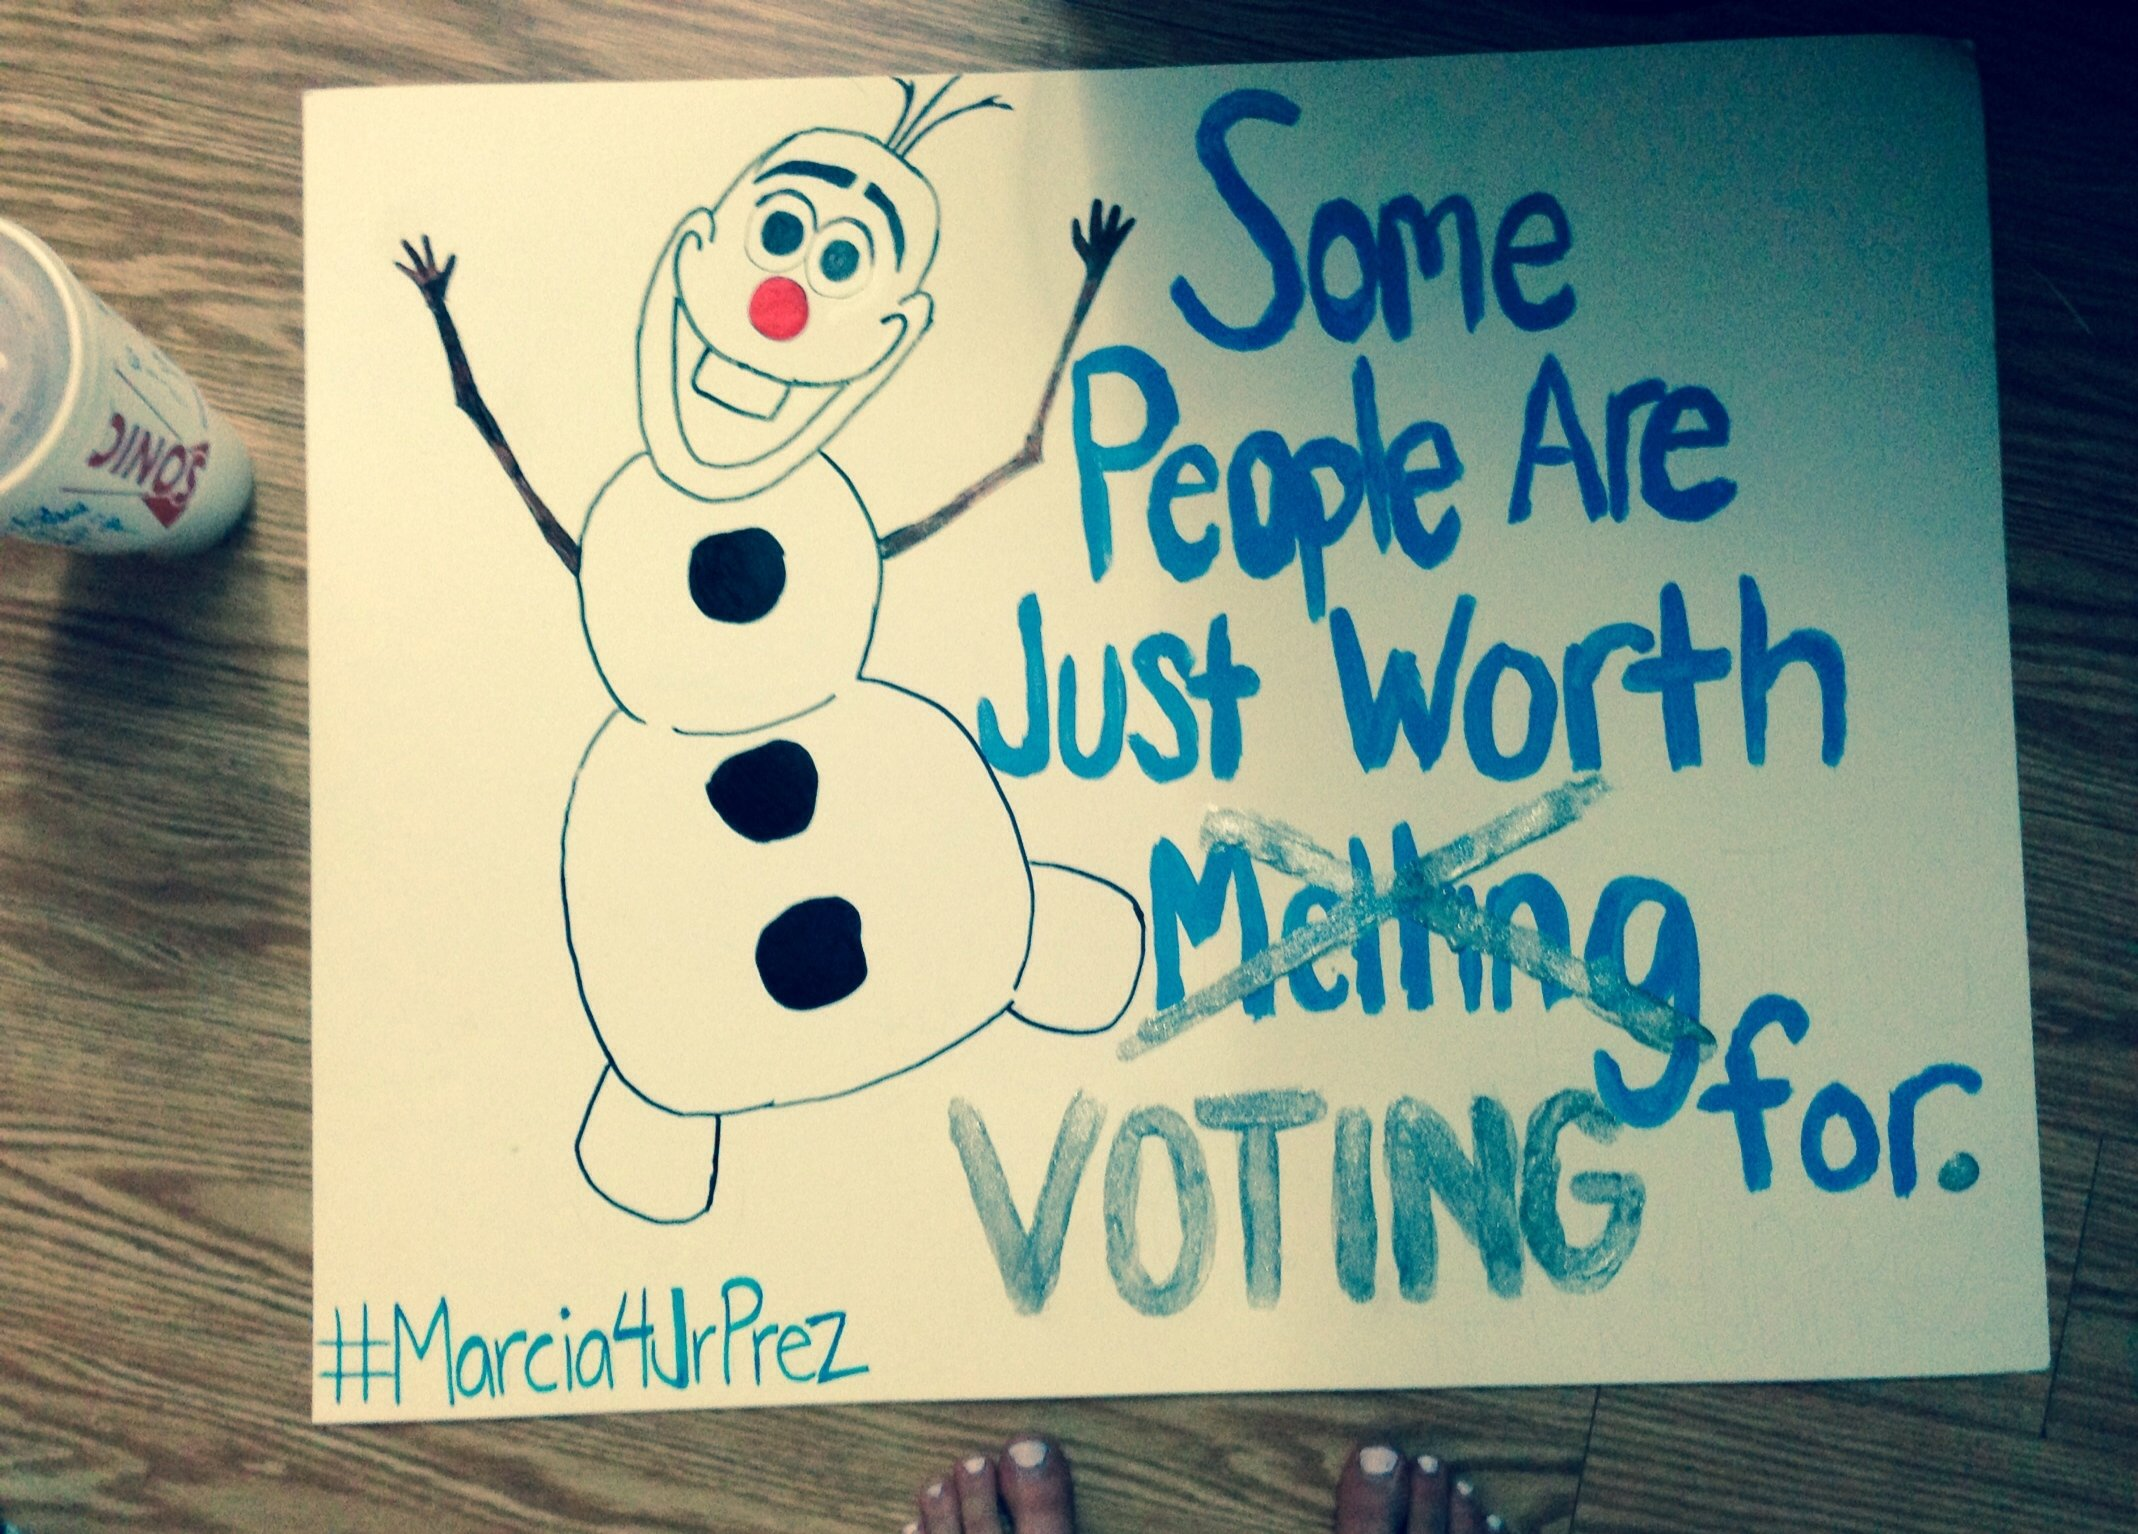 10 Stylish High School Student Council Ideas student council campaign poster craft pinterest campaign 2 2020